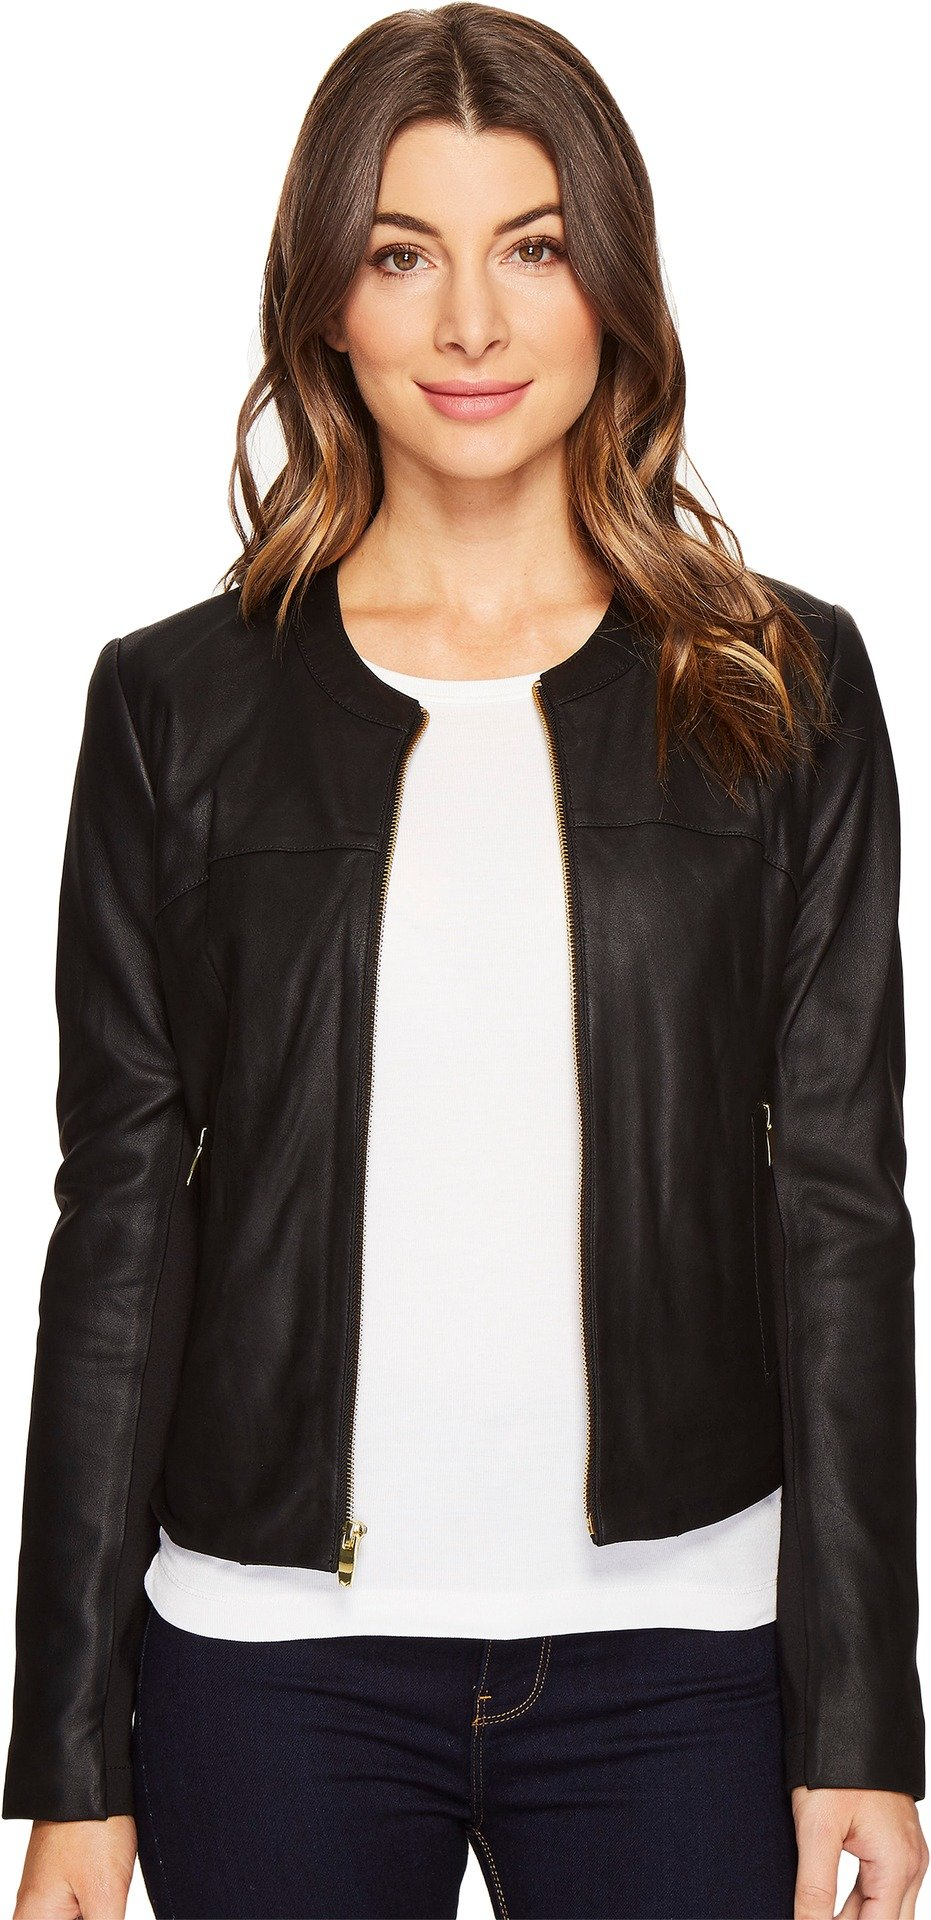 Via Spiga Women's Collarless Leather Jacket with Ponte Backing, Black, L